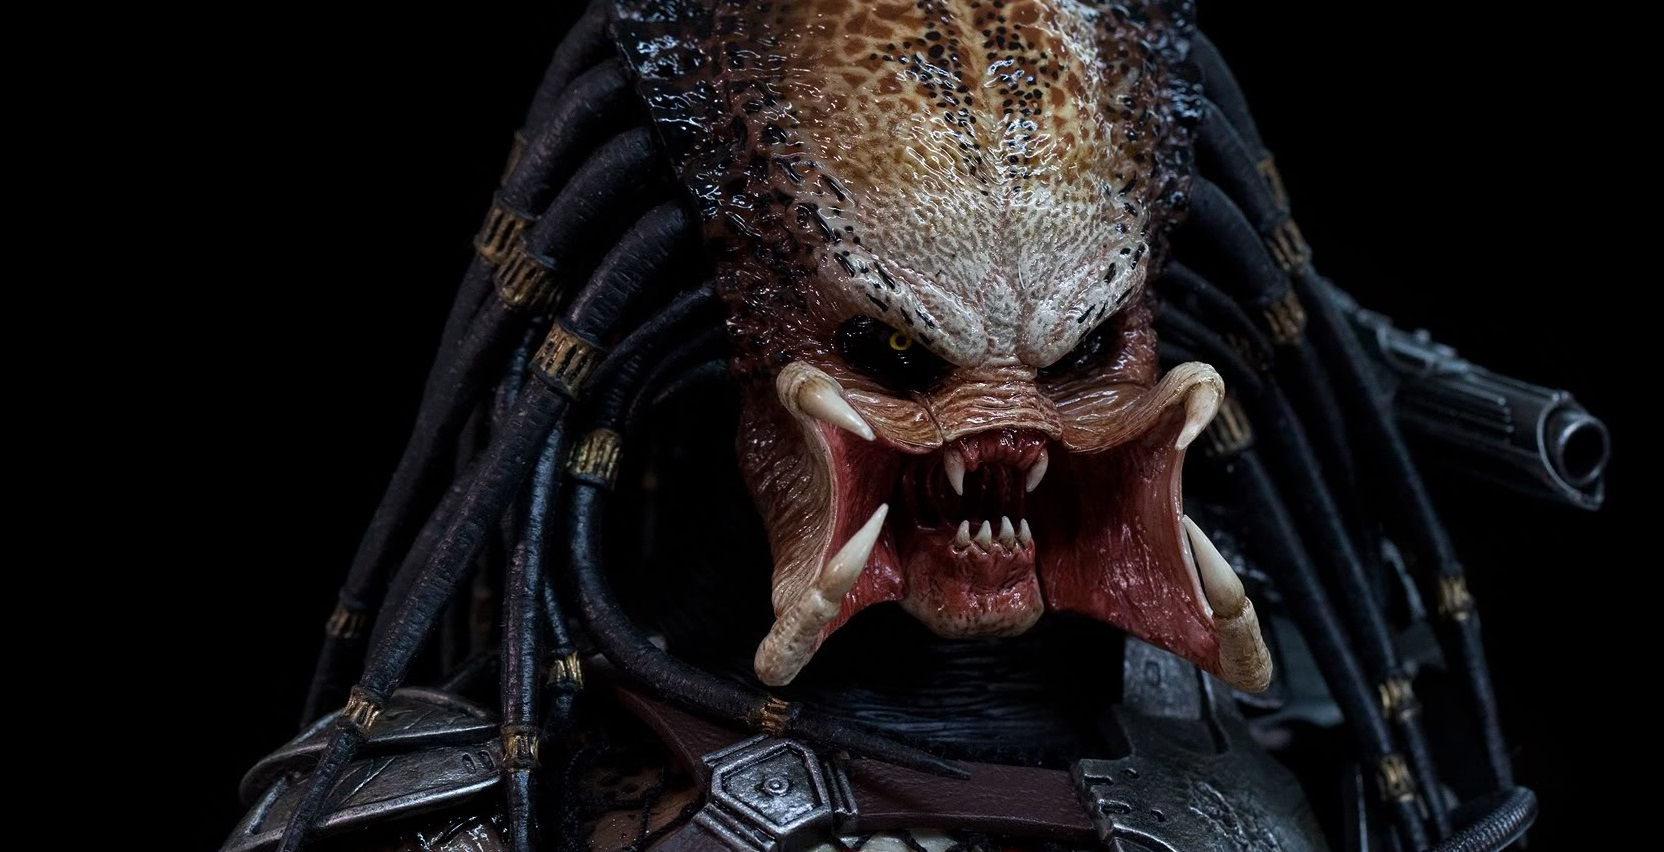 How The Predator Got His Voice